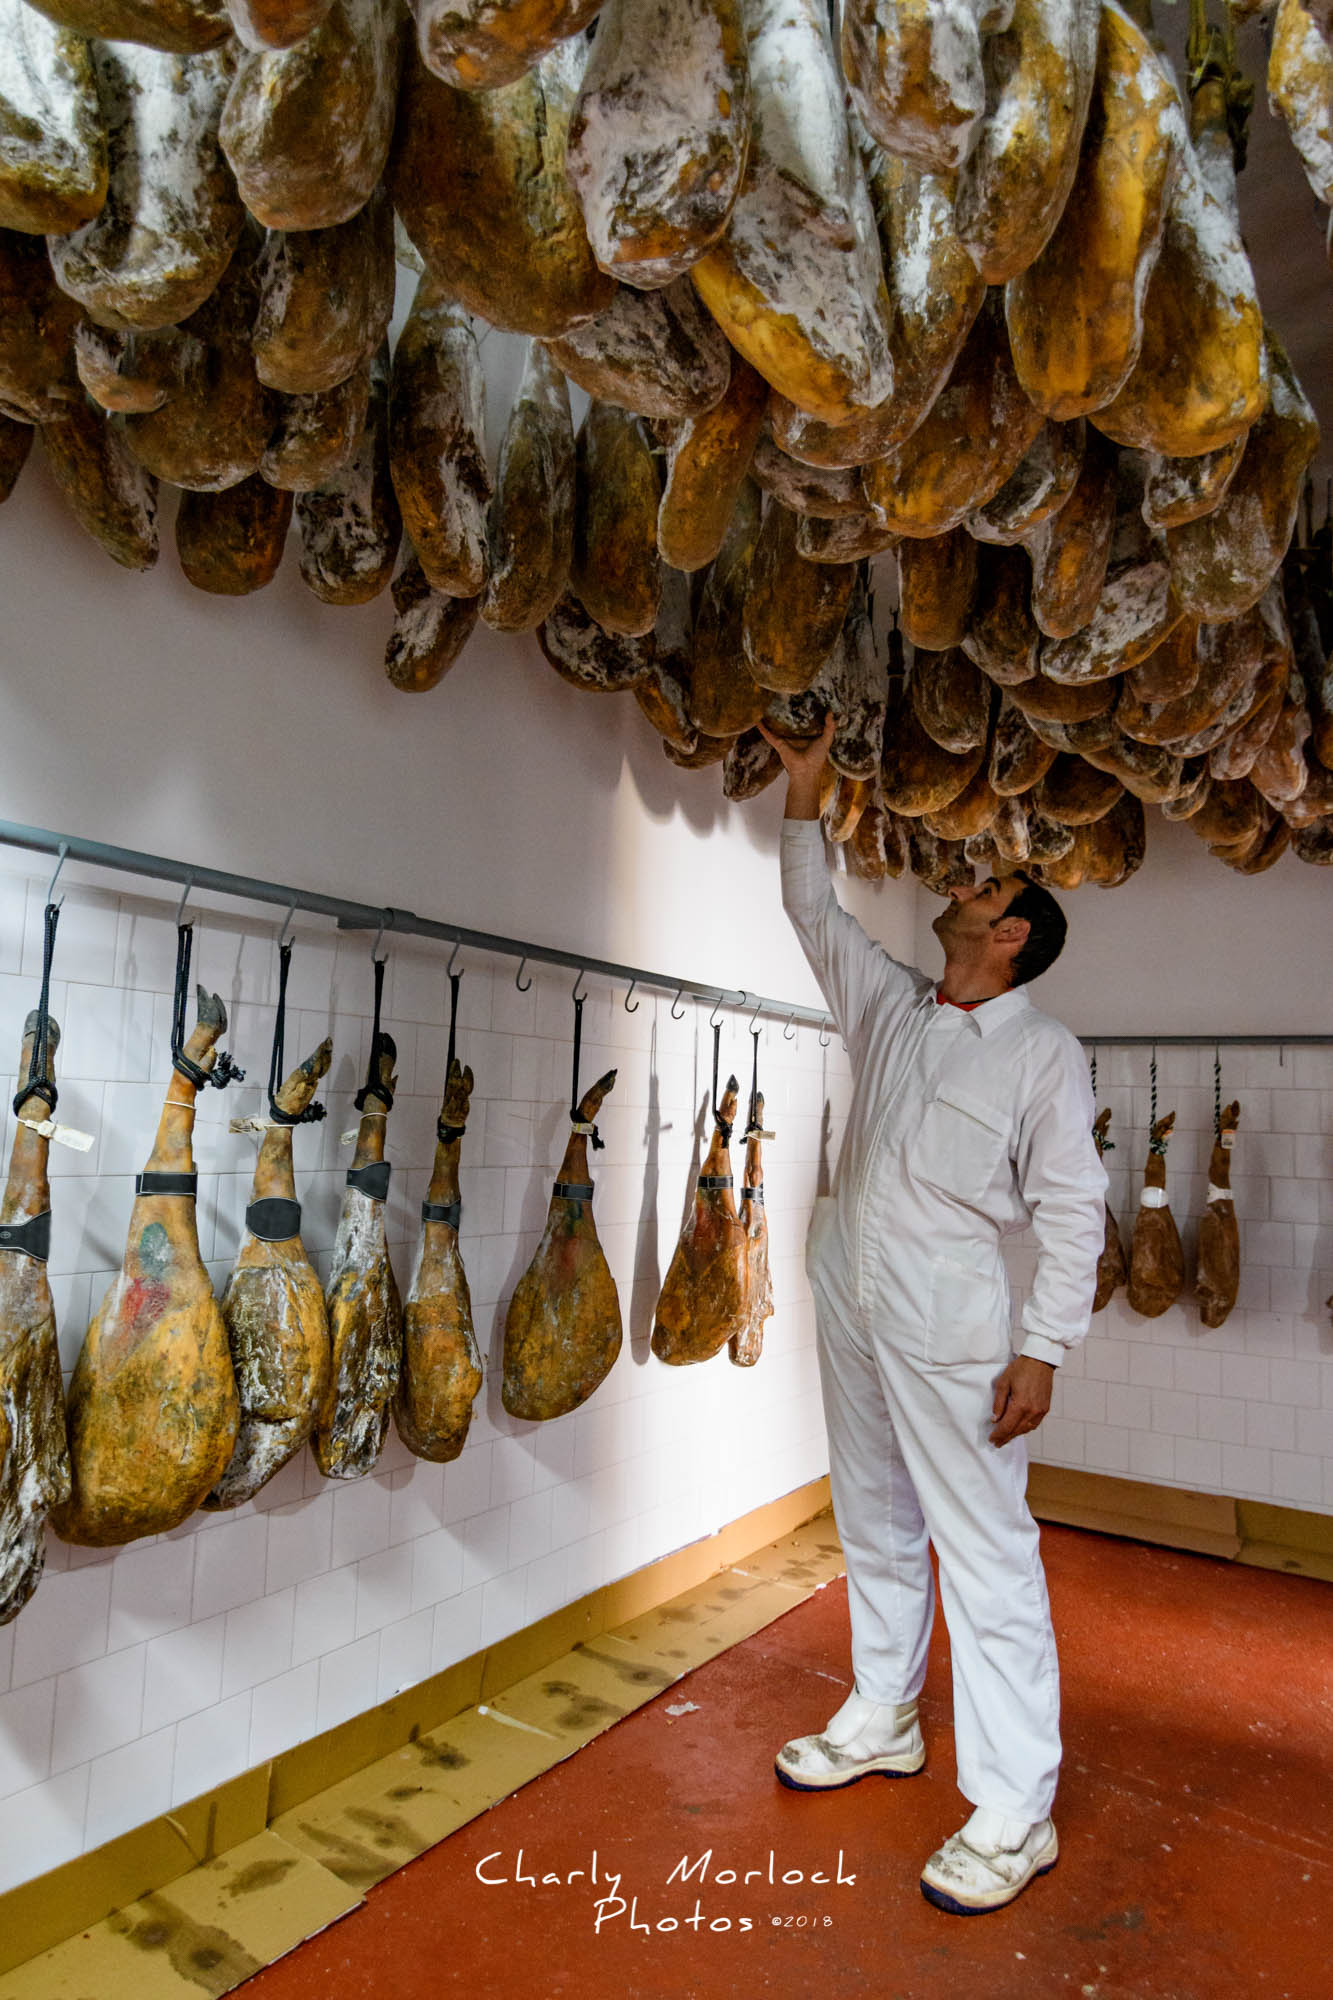 master craftsman butcher checking state of cure of a ham is natu